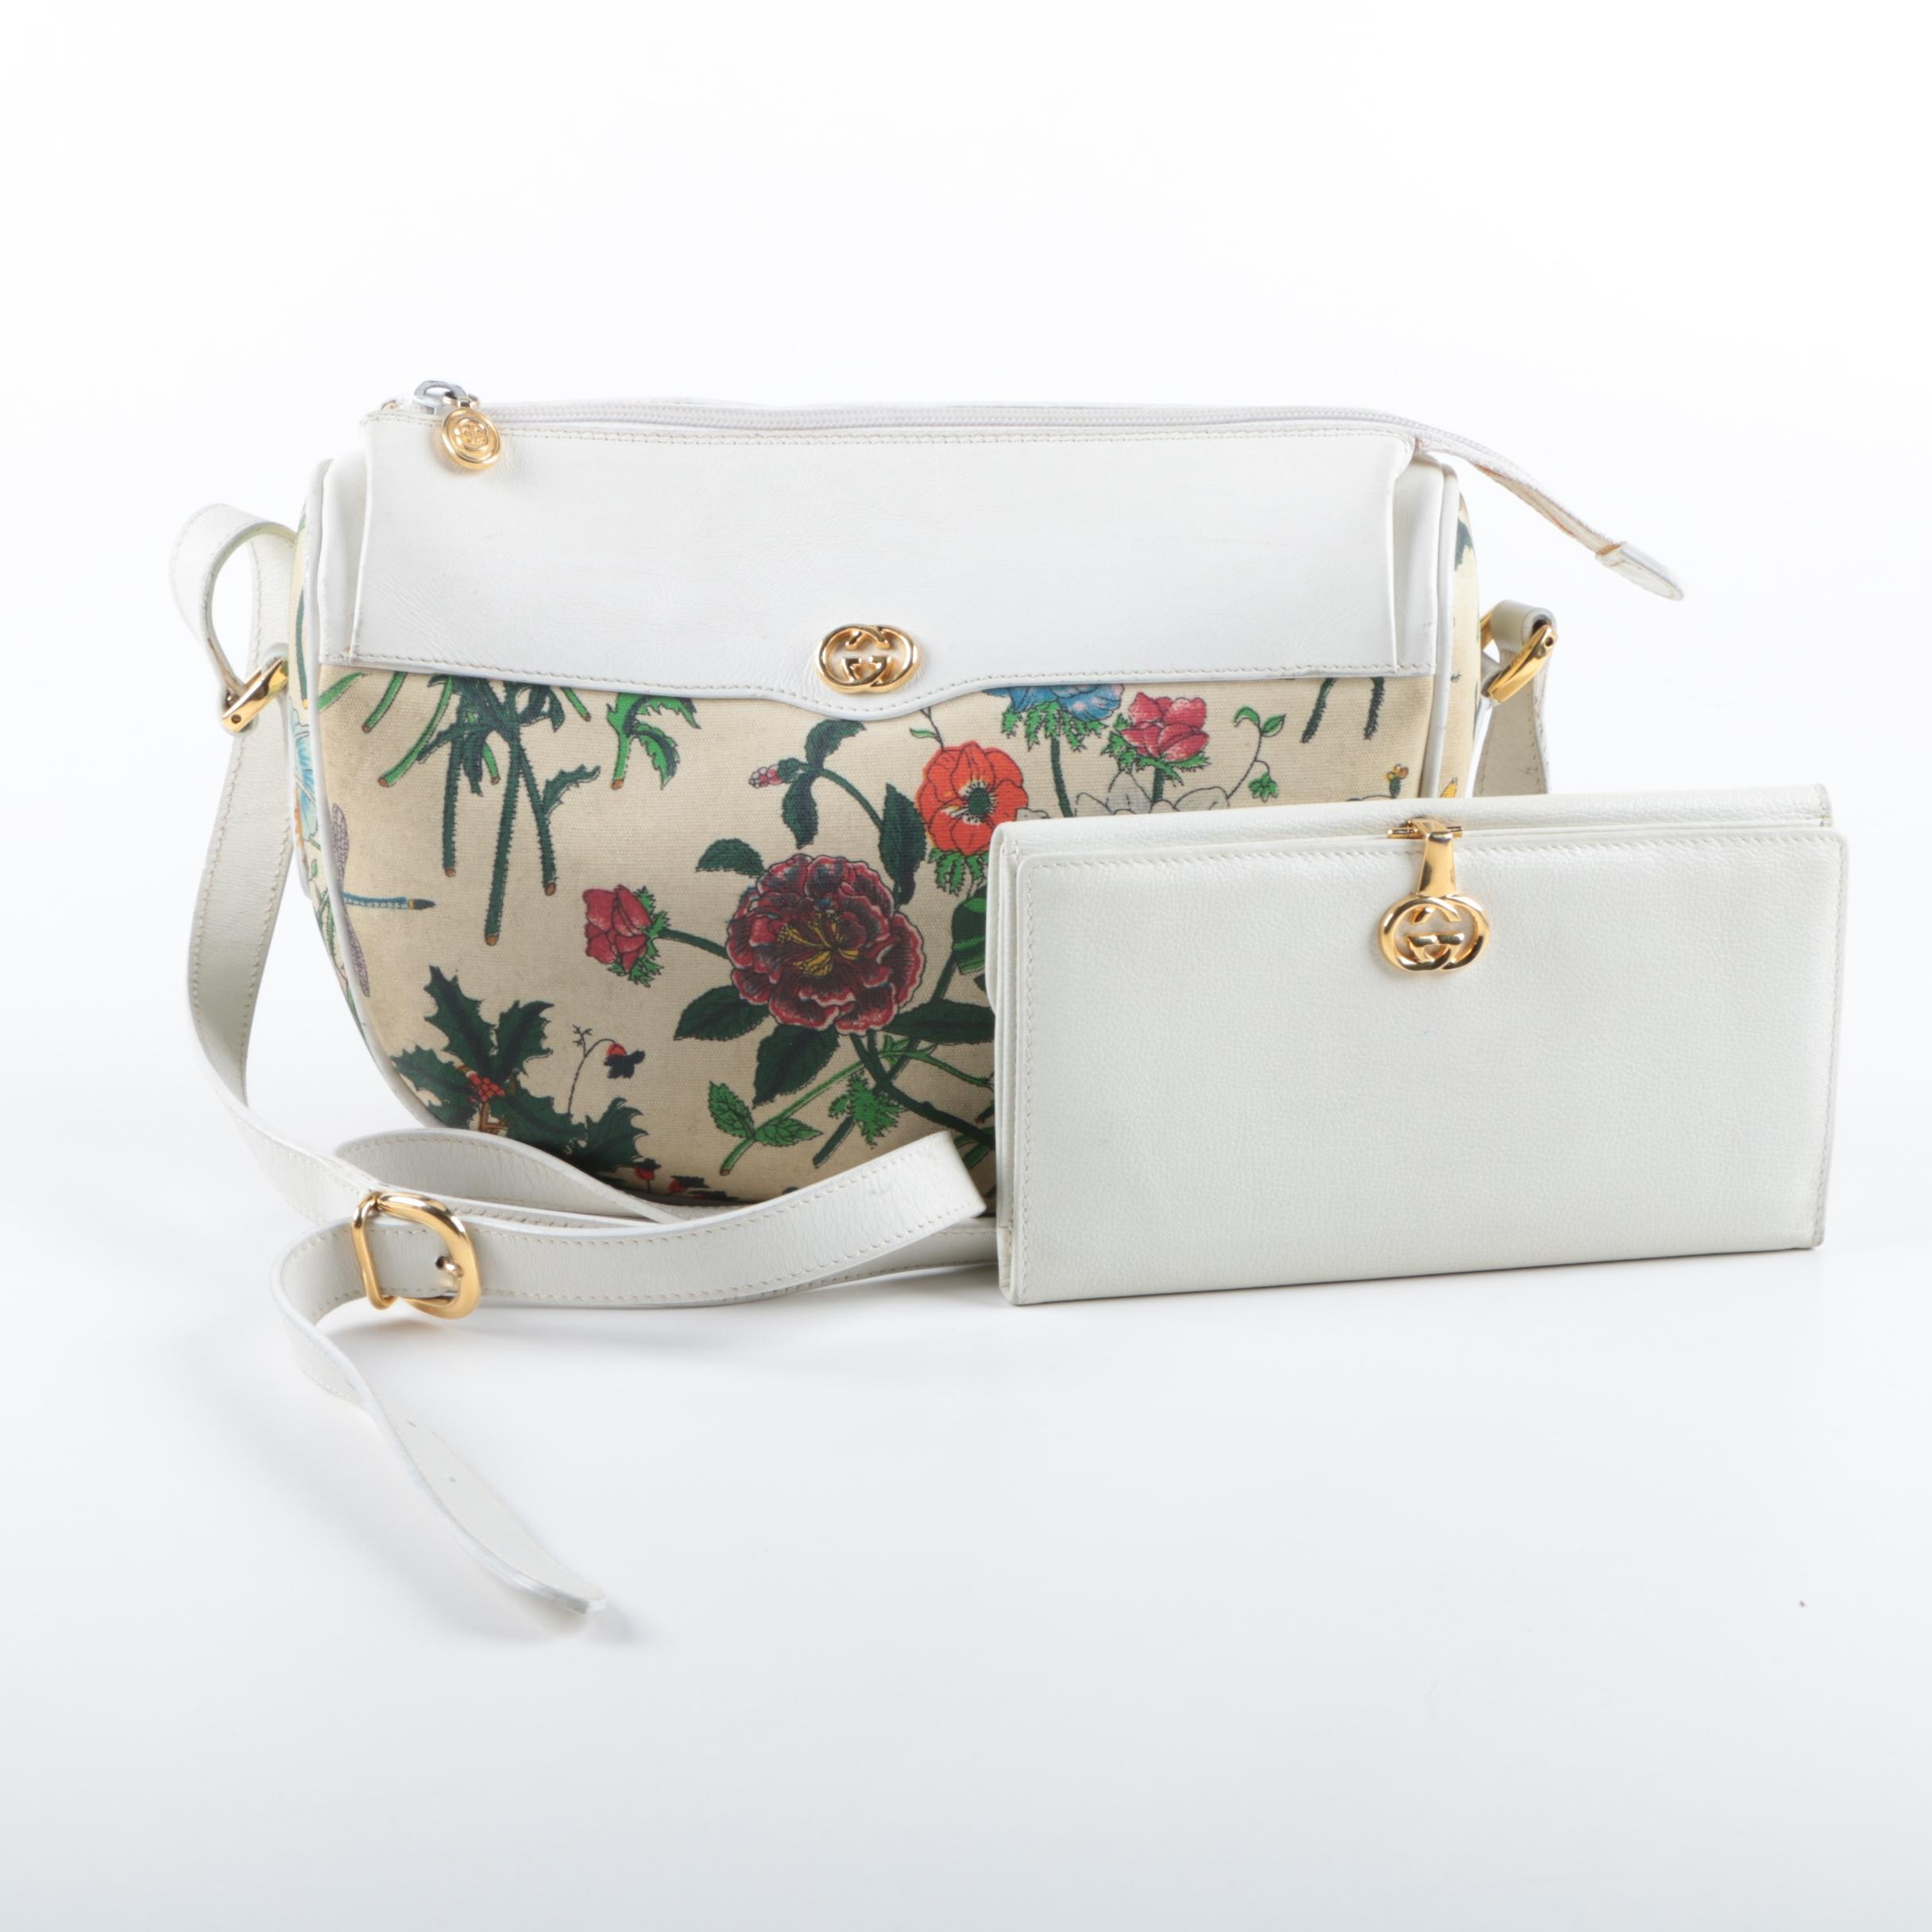 Gucci Floral Canvas and White Leather Shoulder Bag